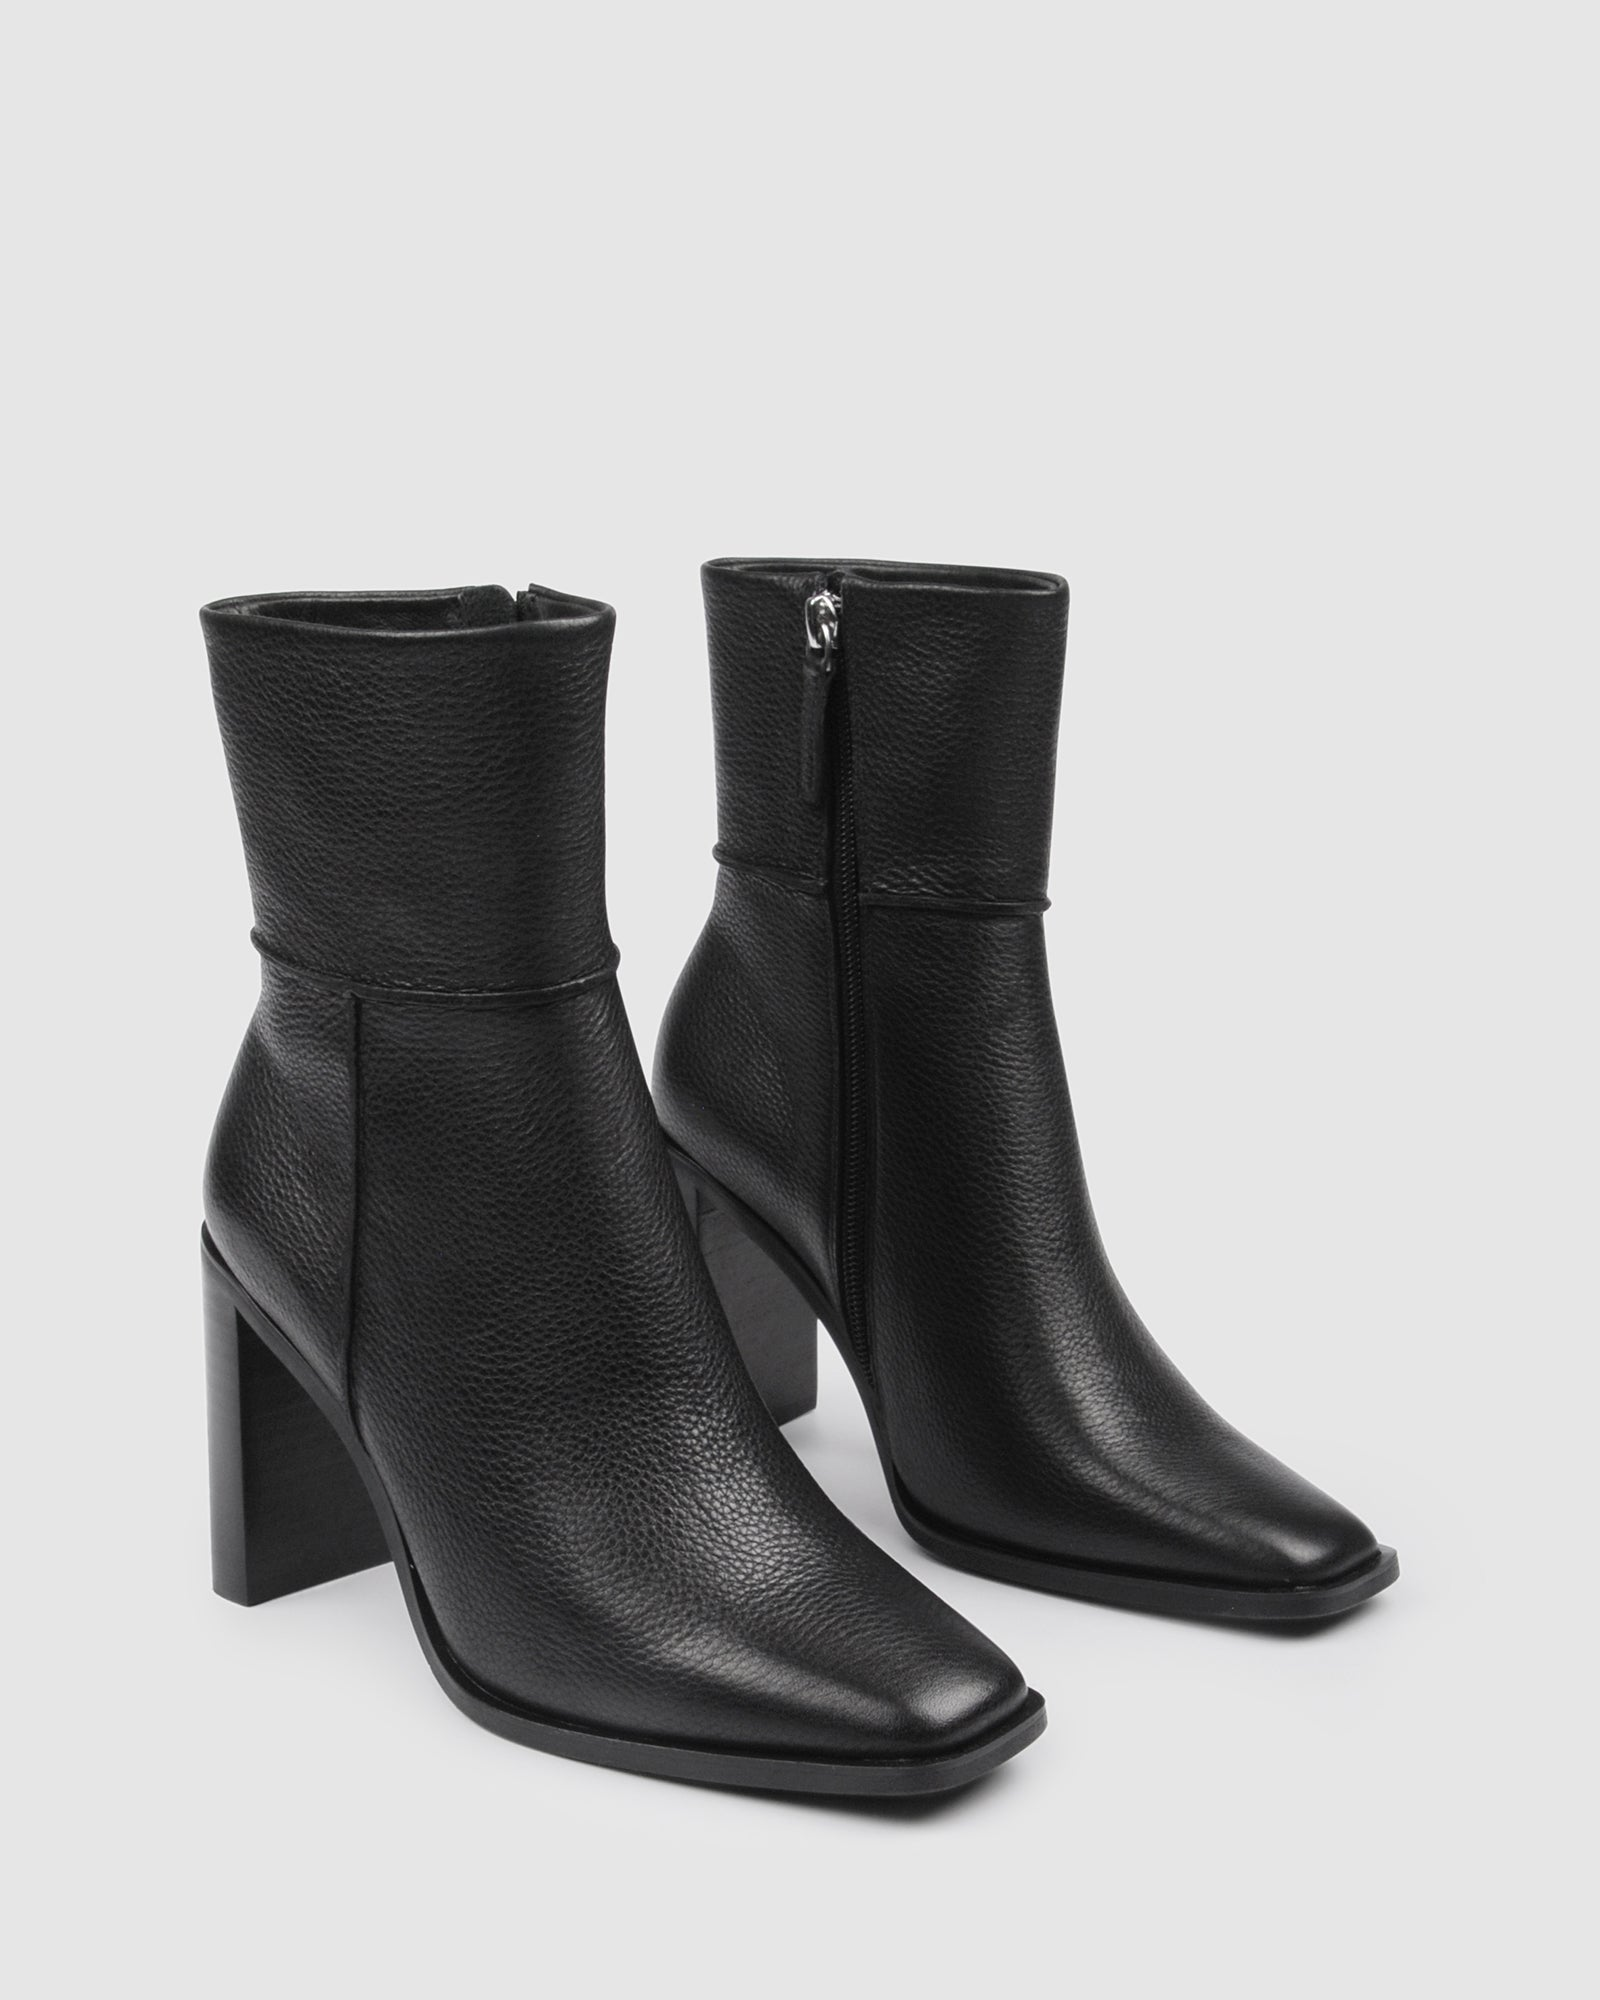 CHANCE HIGH ANKLE BOOTS BLACK LEATHER